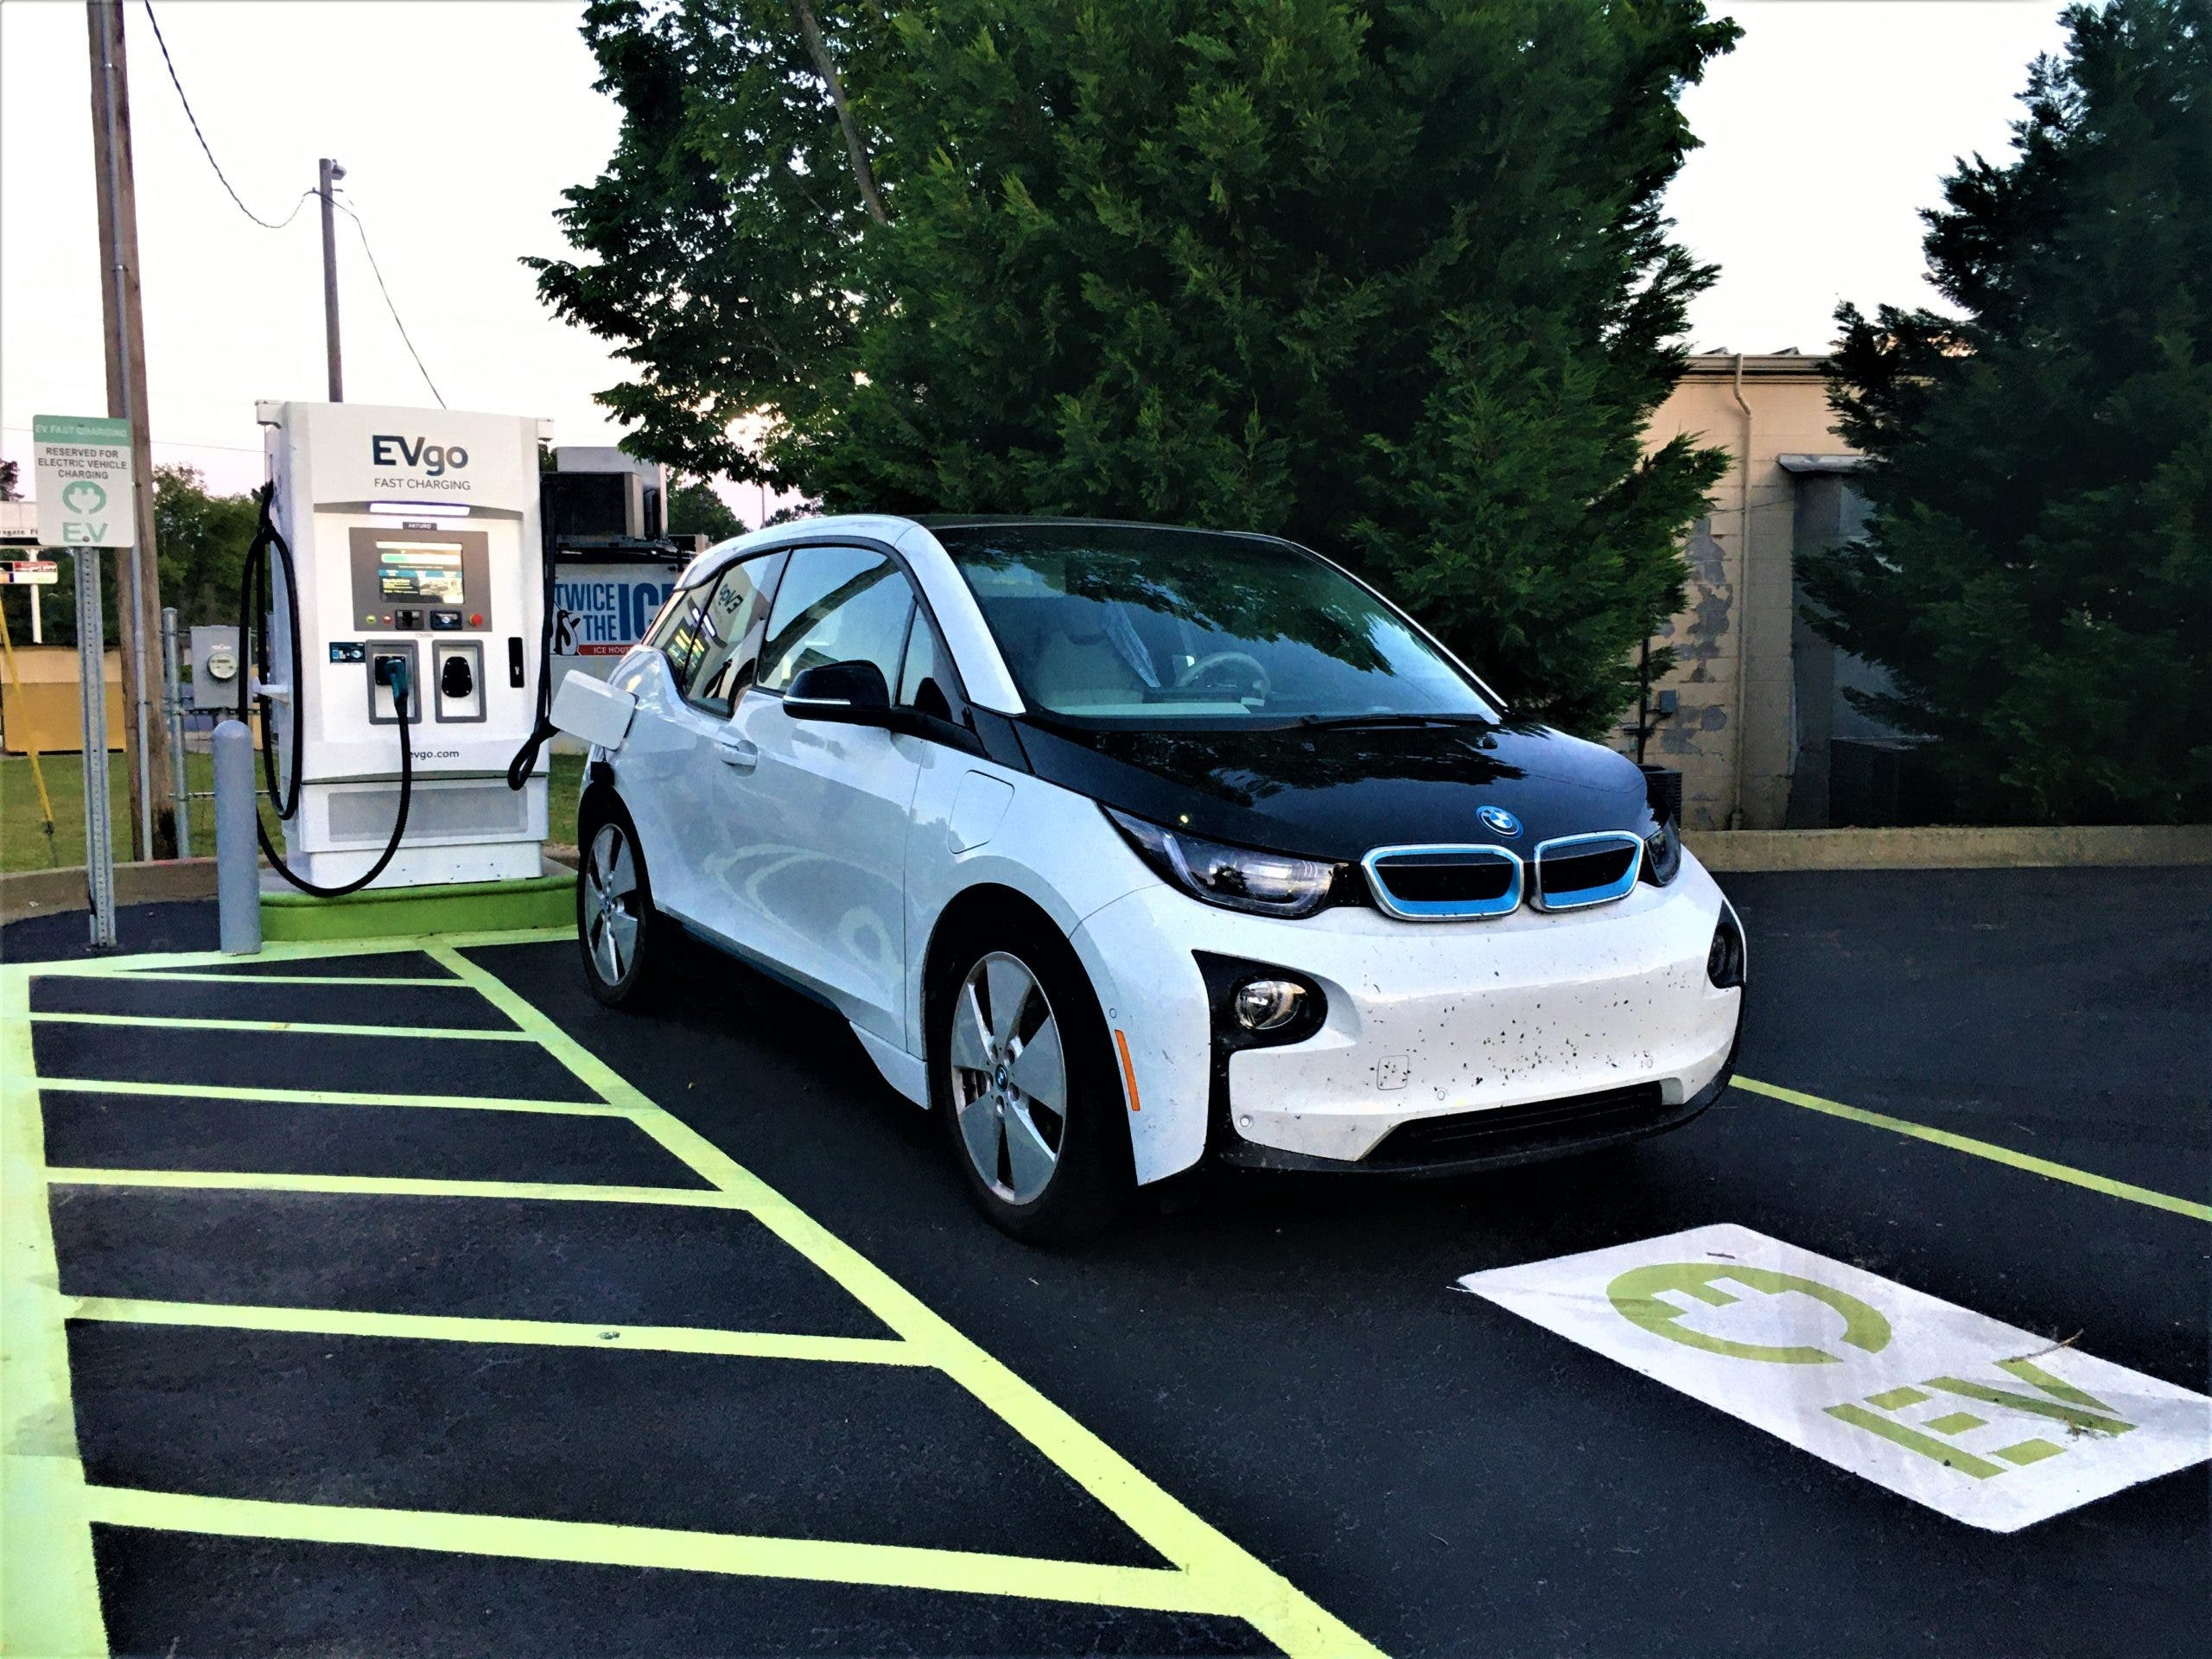 Electric Vehicles Are Cleaner Than Gasoline Vehicles (New Fact Sheet)